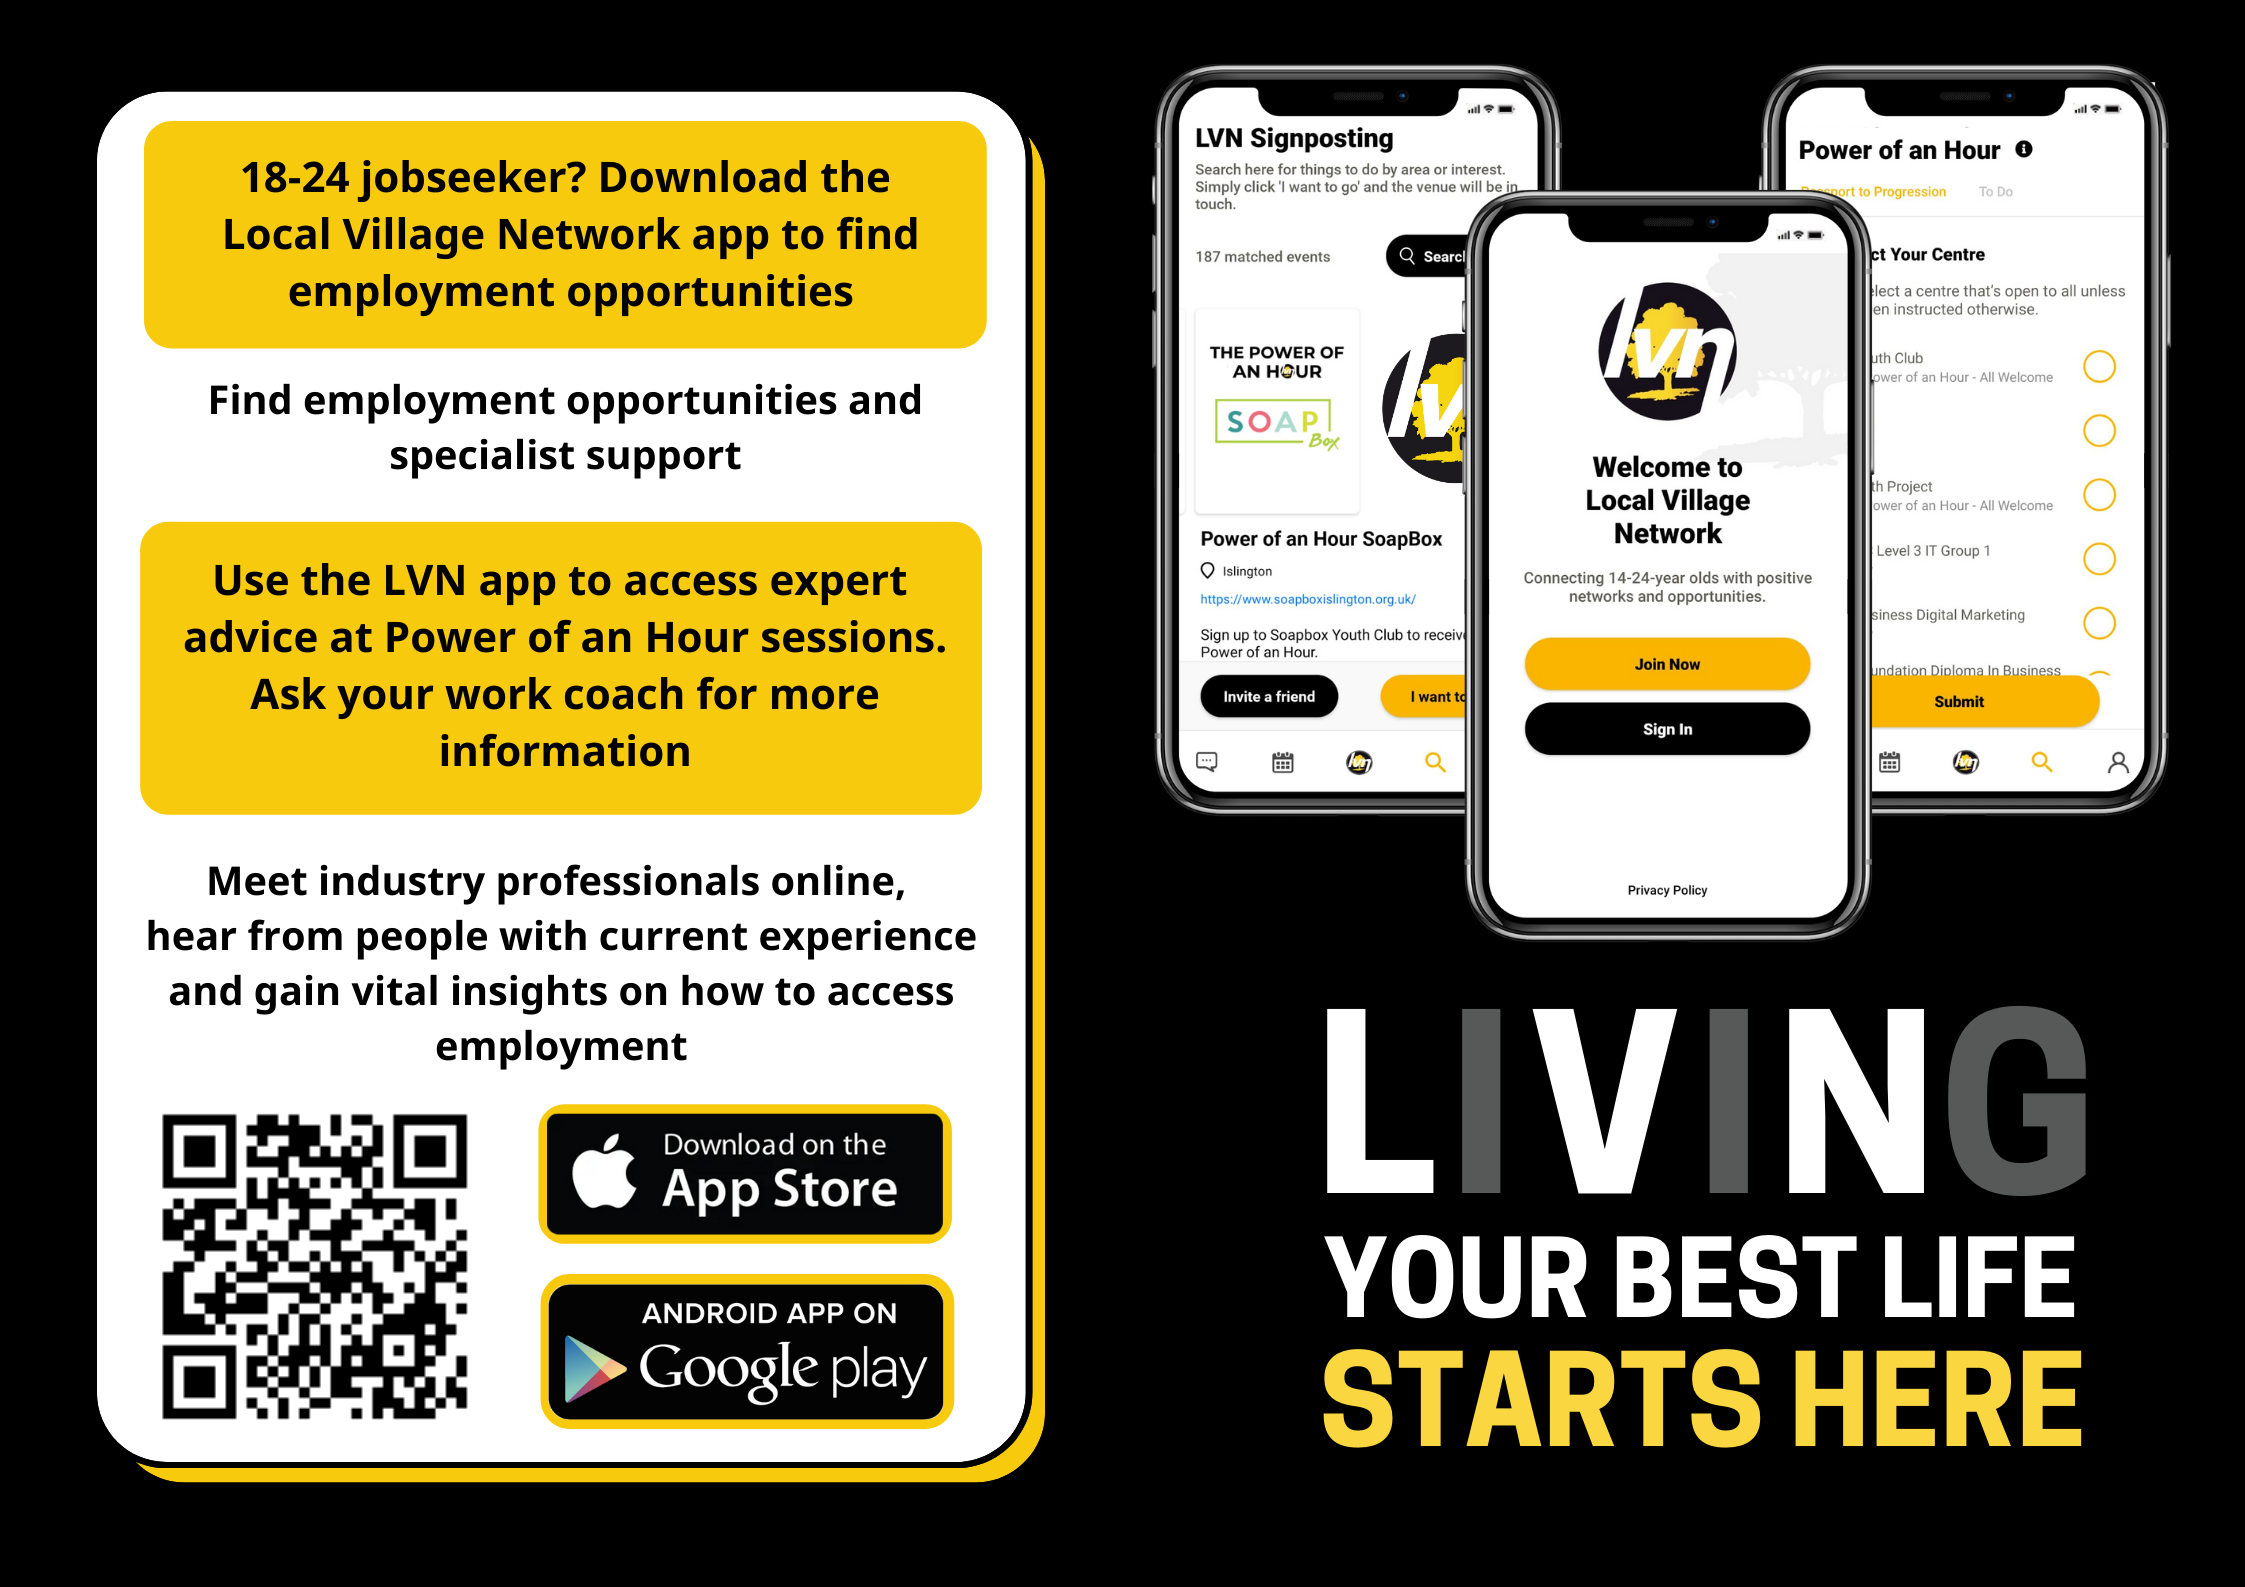 About LVN flyer